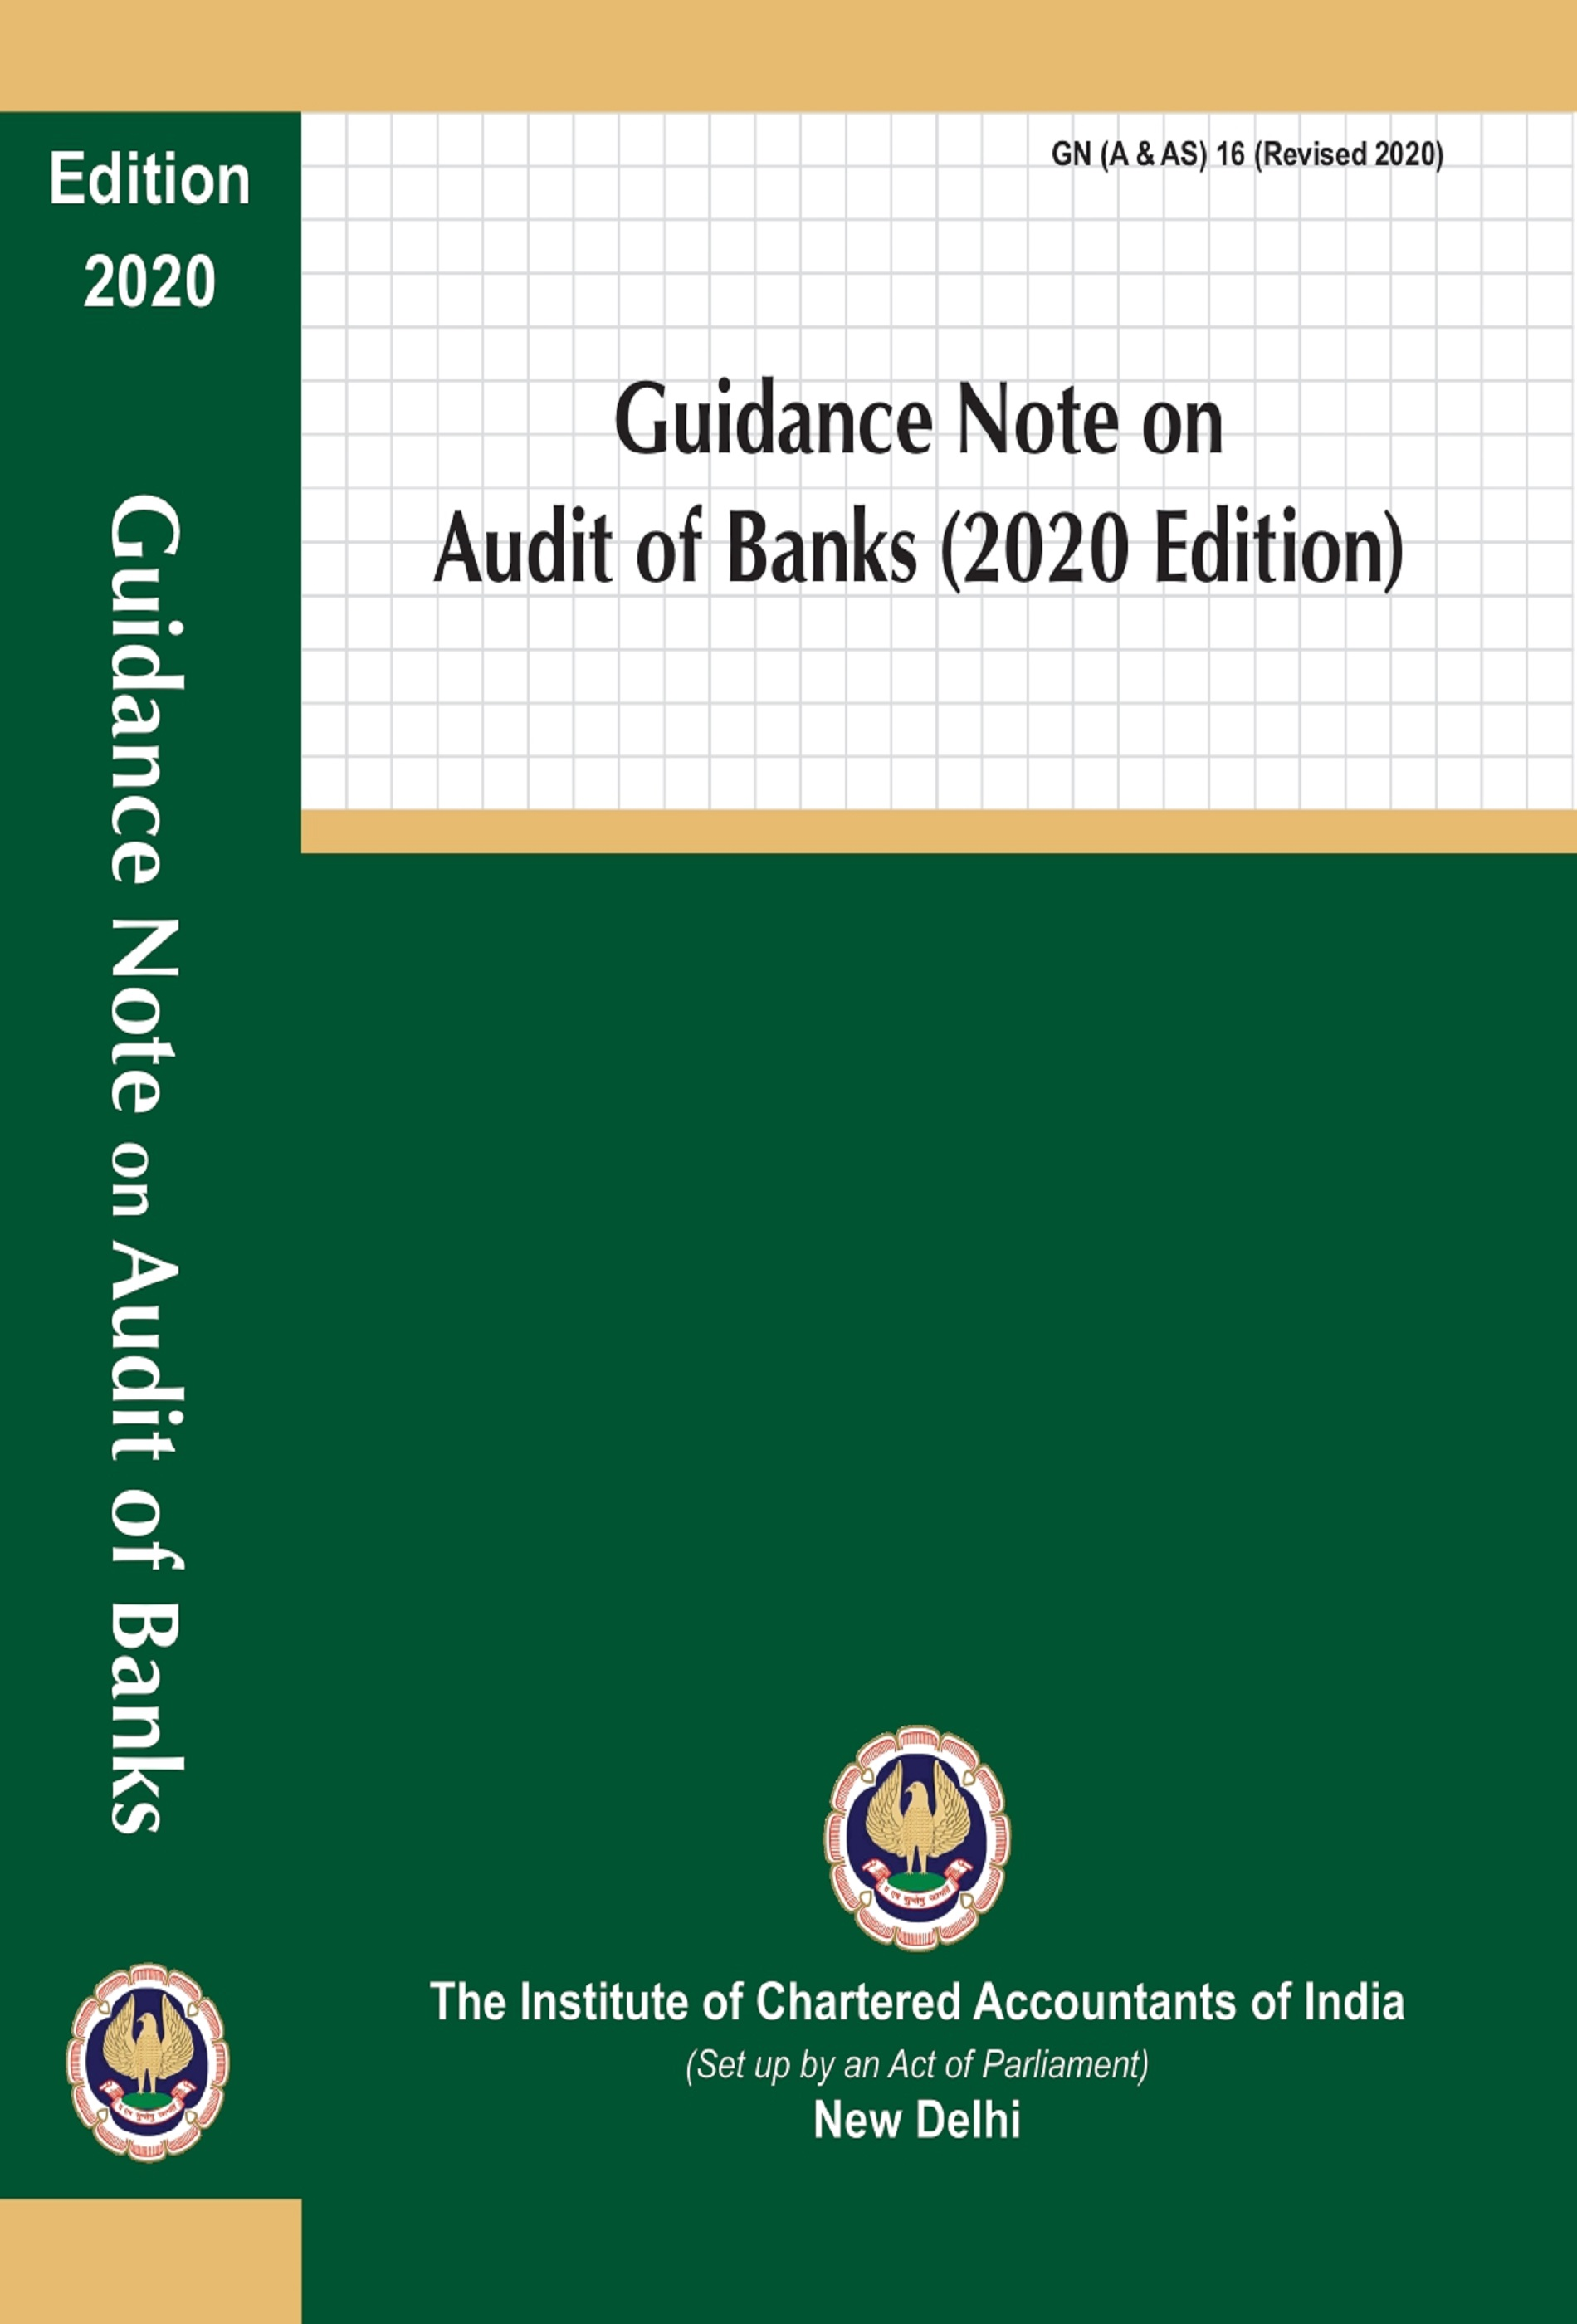 Guidance Note on Audit of Banks (2020 Edition)